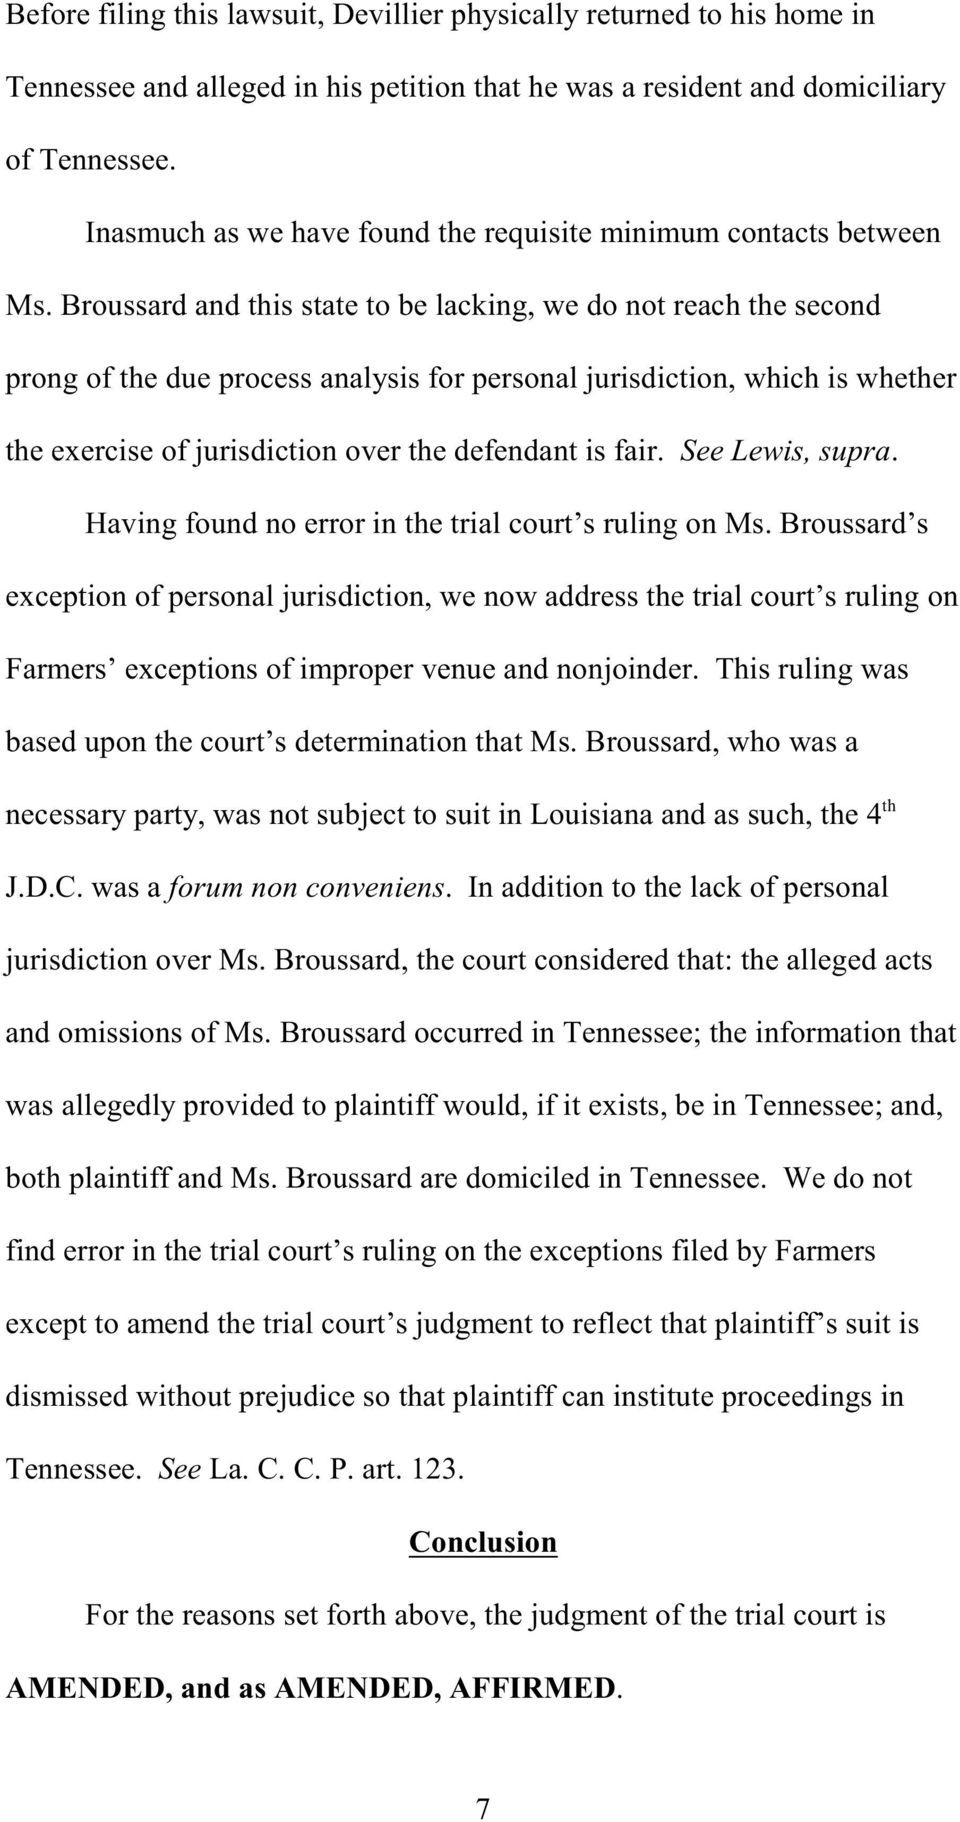 Broussard and this state to be lacking, we do not reach the second prong of the due process analysis for personal jurisdiction, which is whether the exercise of jurisdiction over the defendant is